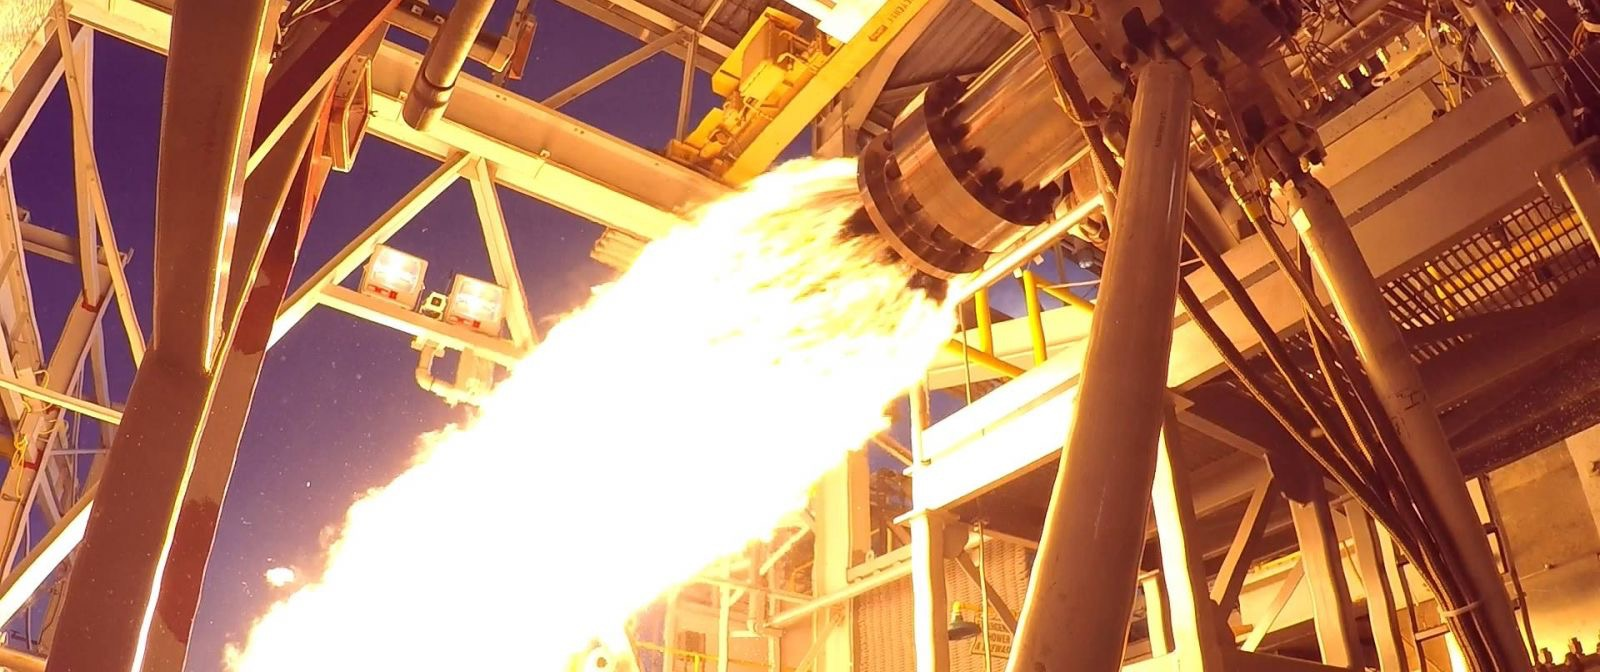 Aerojet Rocketdyne tests a portion of its AR1 engine at NASA's Stennis Space Center in Mississippi. Photo Credit: Aerojet Rocketdyne